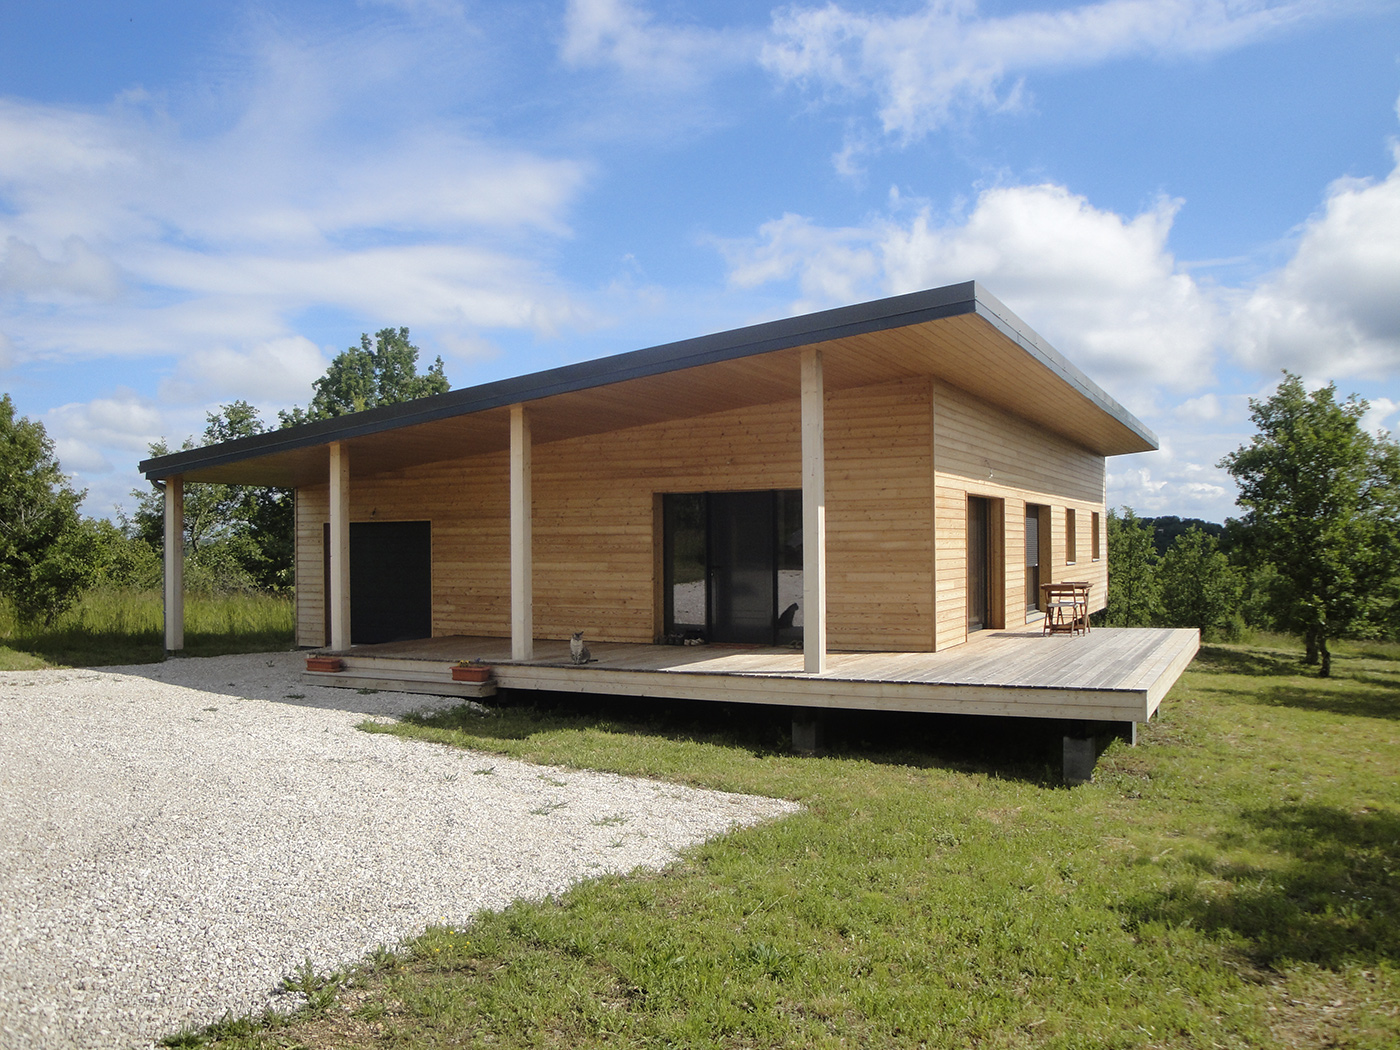 Maison contemporaine en ossature bois par evobois la for Modele de maison en bois contemporaine